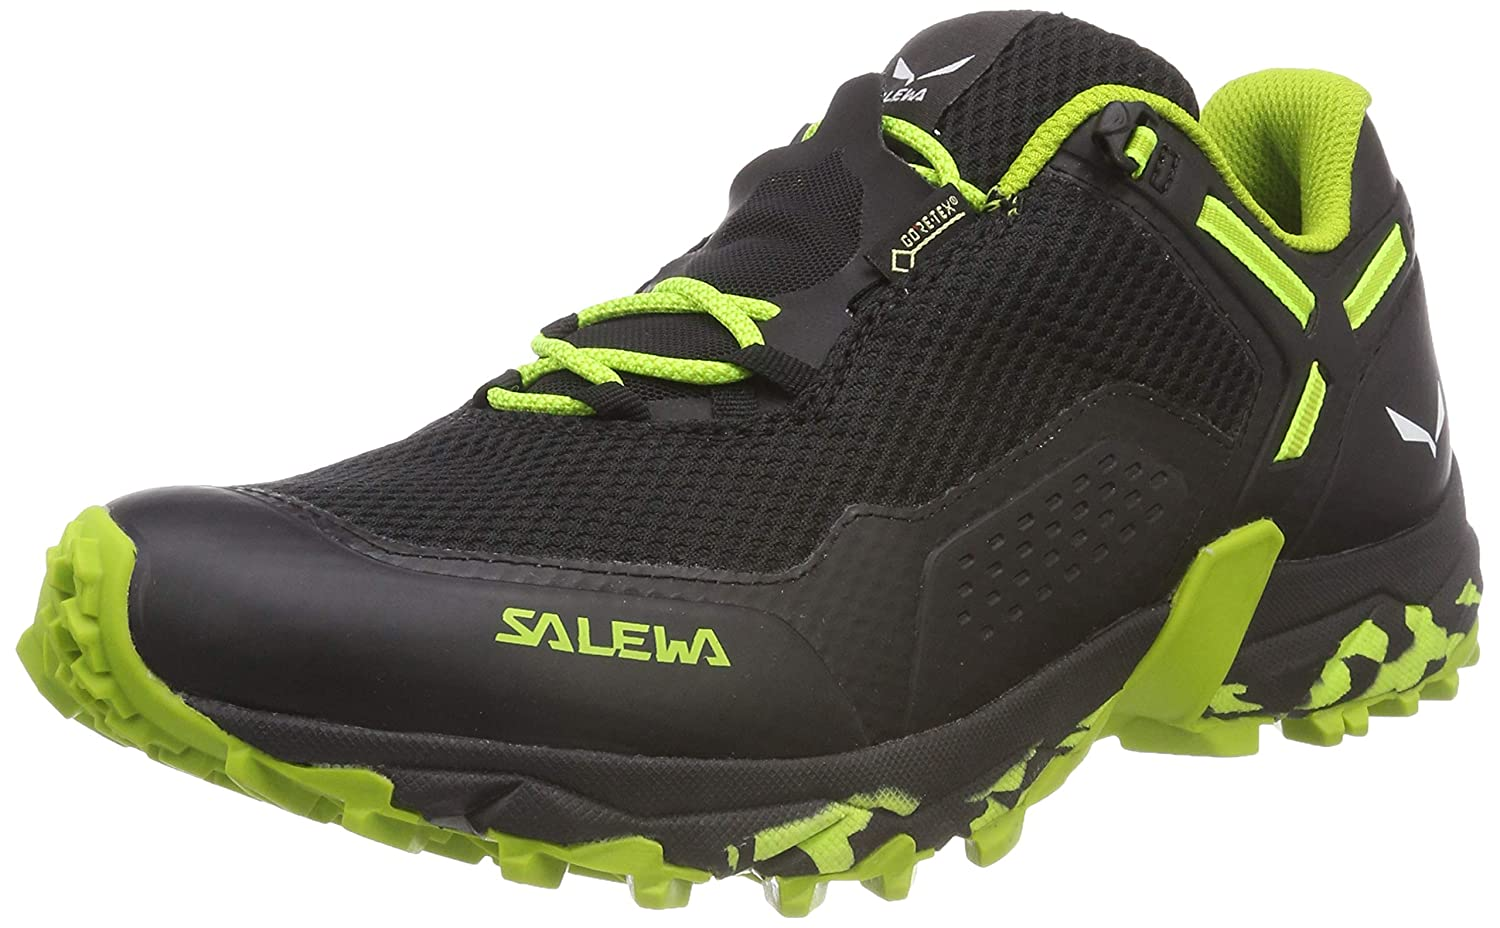 TALLA 42 EU. SALEWA Ms Speed Beat GTX, Zapatillas de Trail Running para Hombre